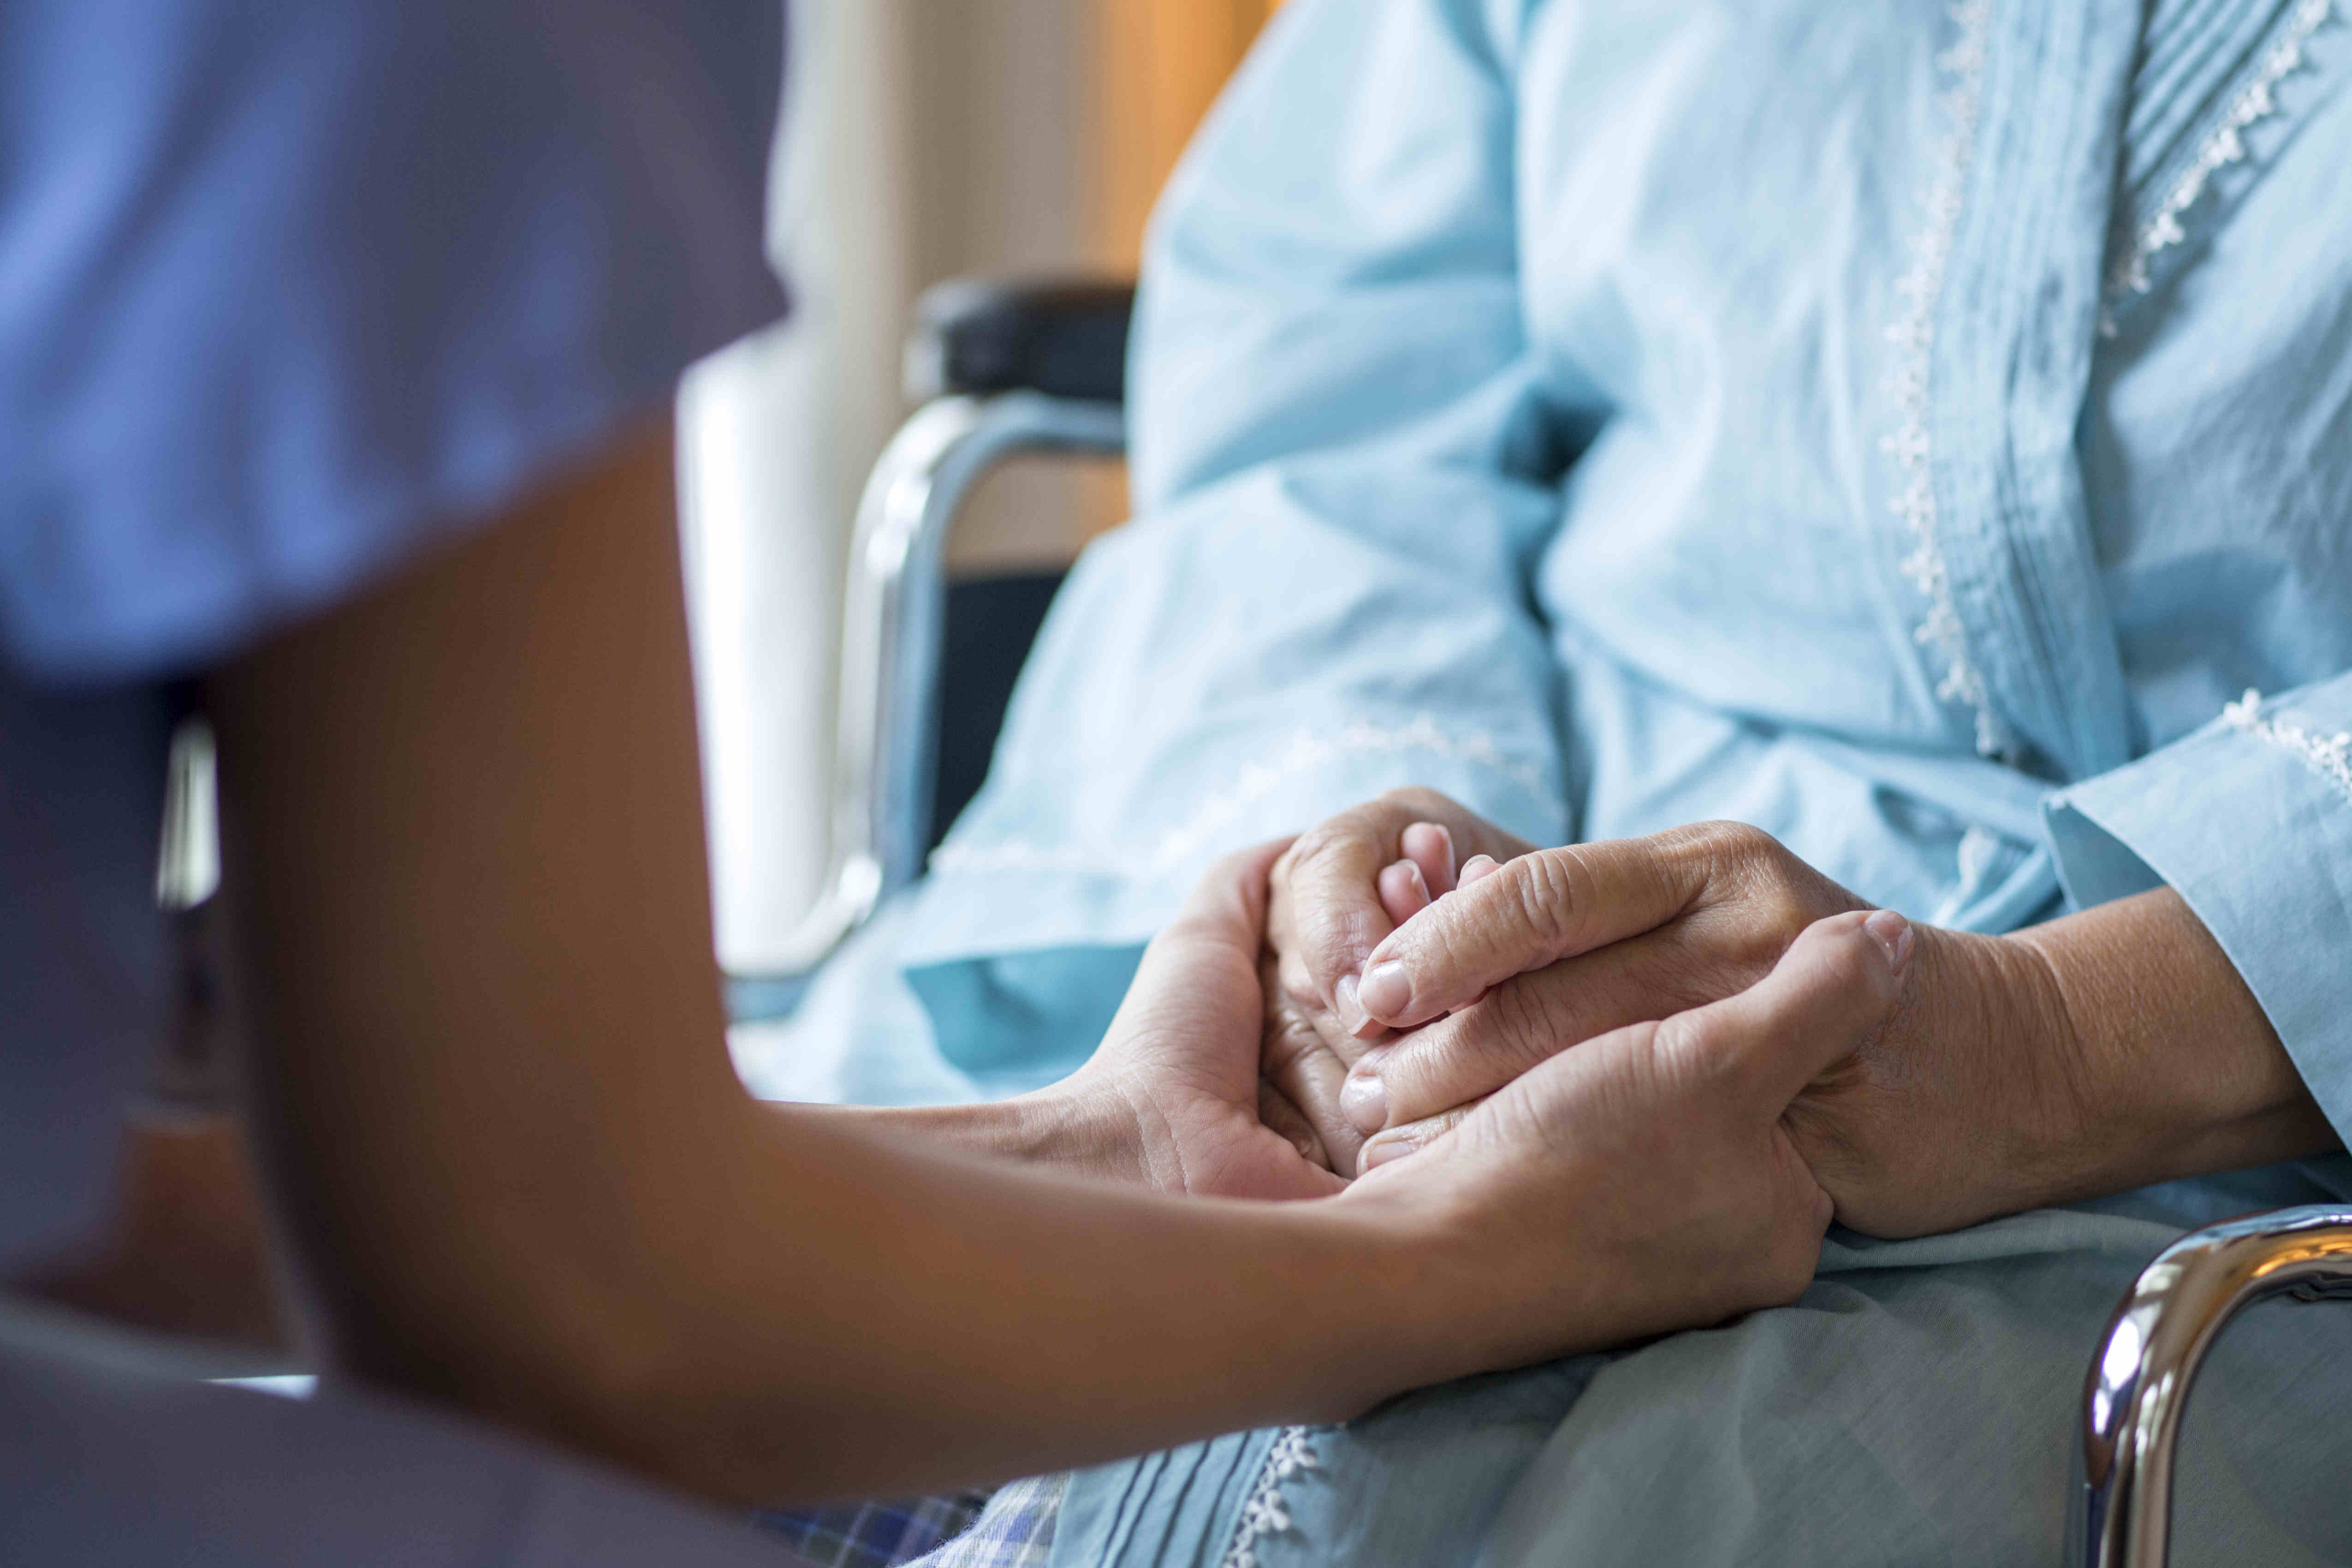 stock-photo-close-up-of-nurse-comforting-older-patient-in-wheelchair-113858147_副本